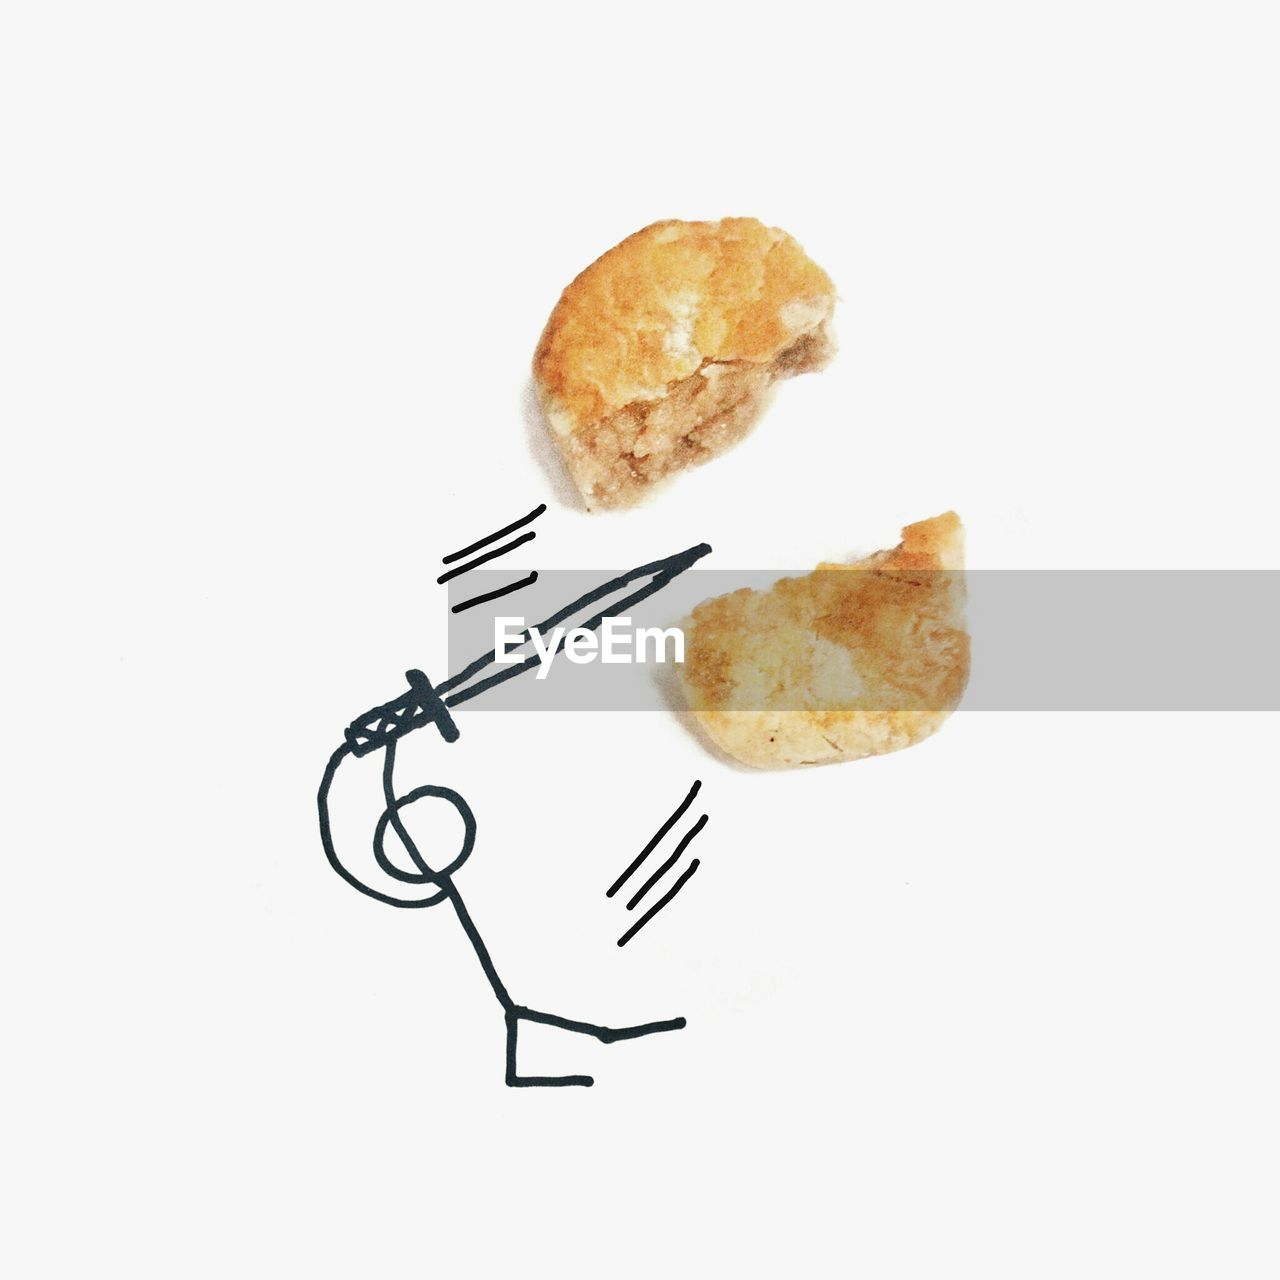 Close-Up Of Stick Figure Cutting Bread On White Paper